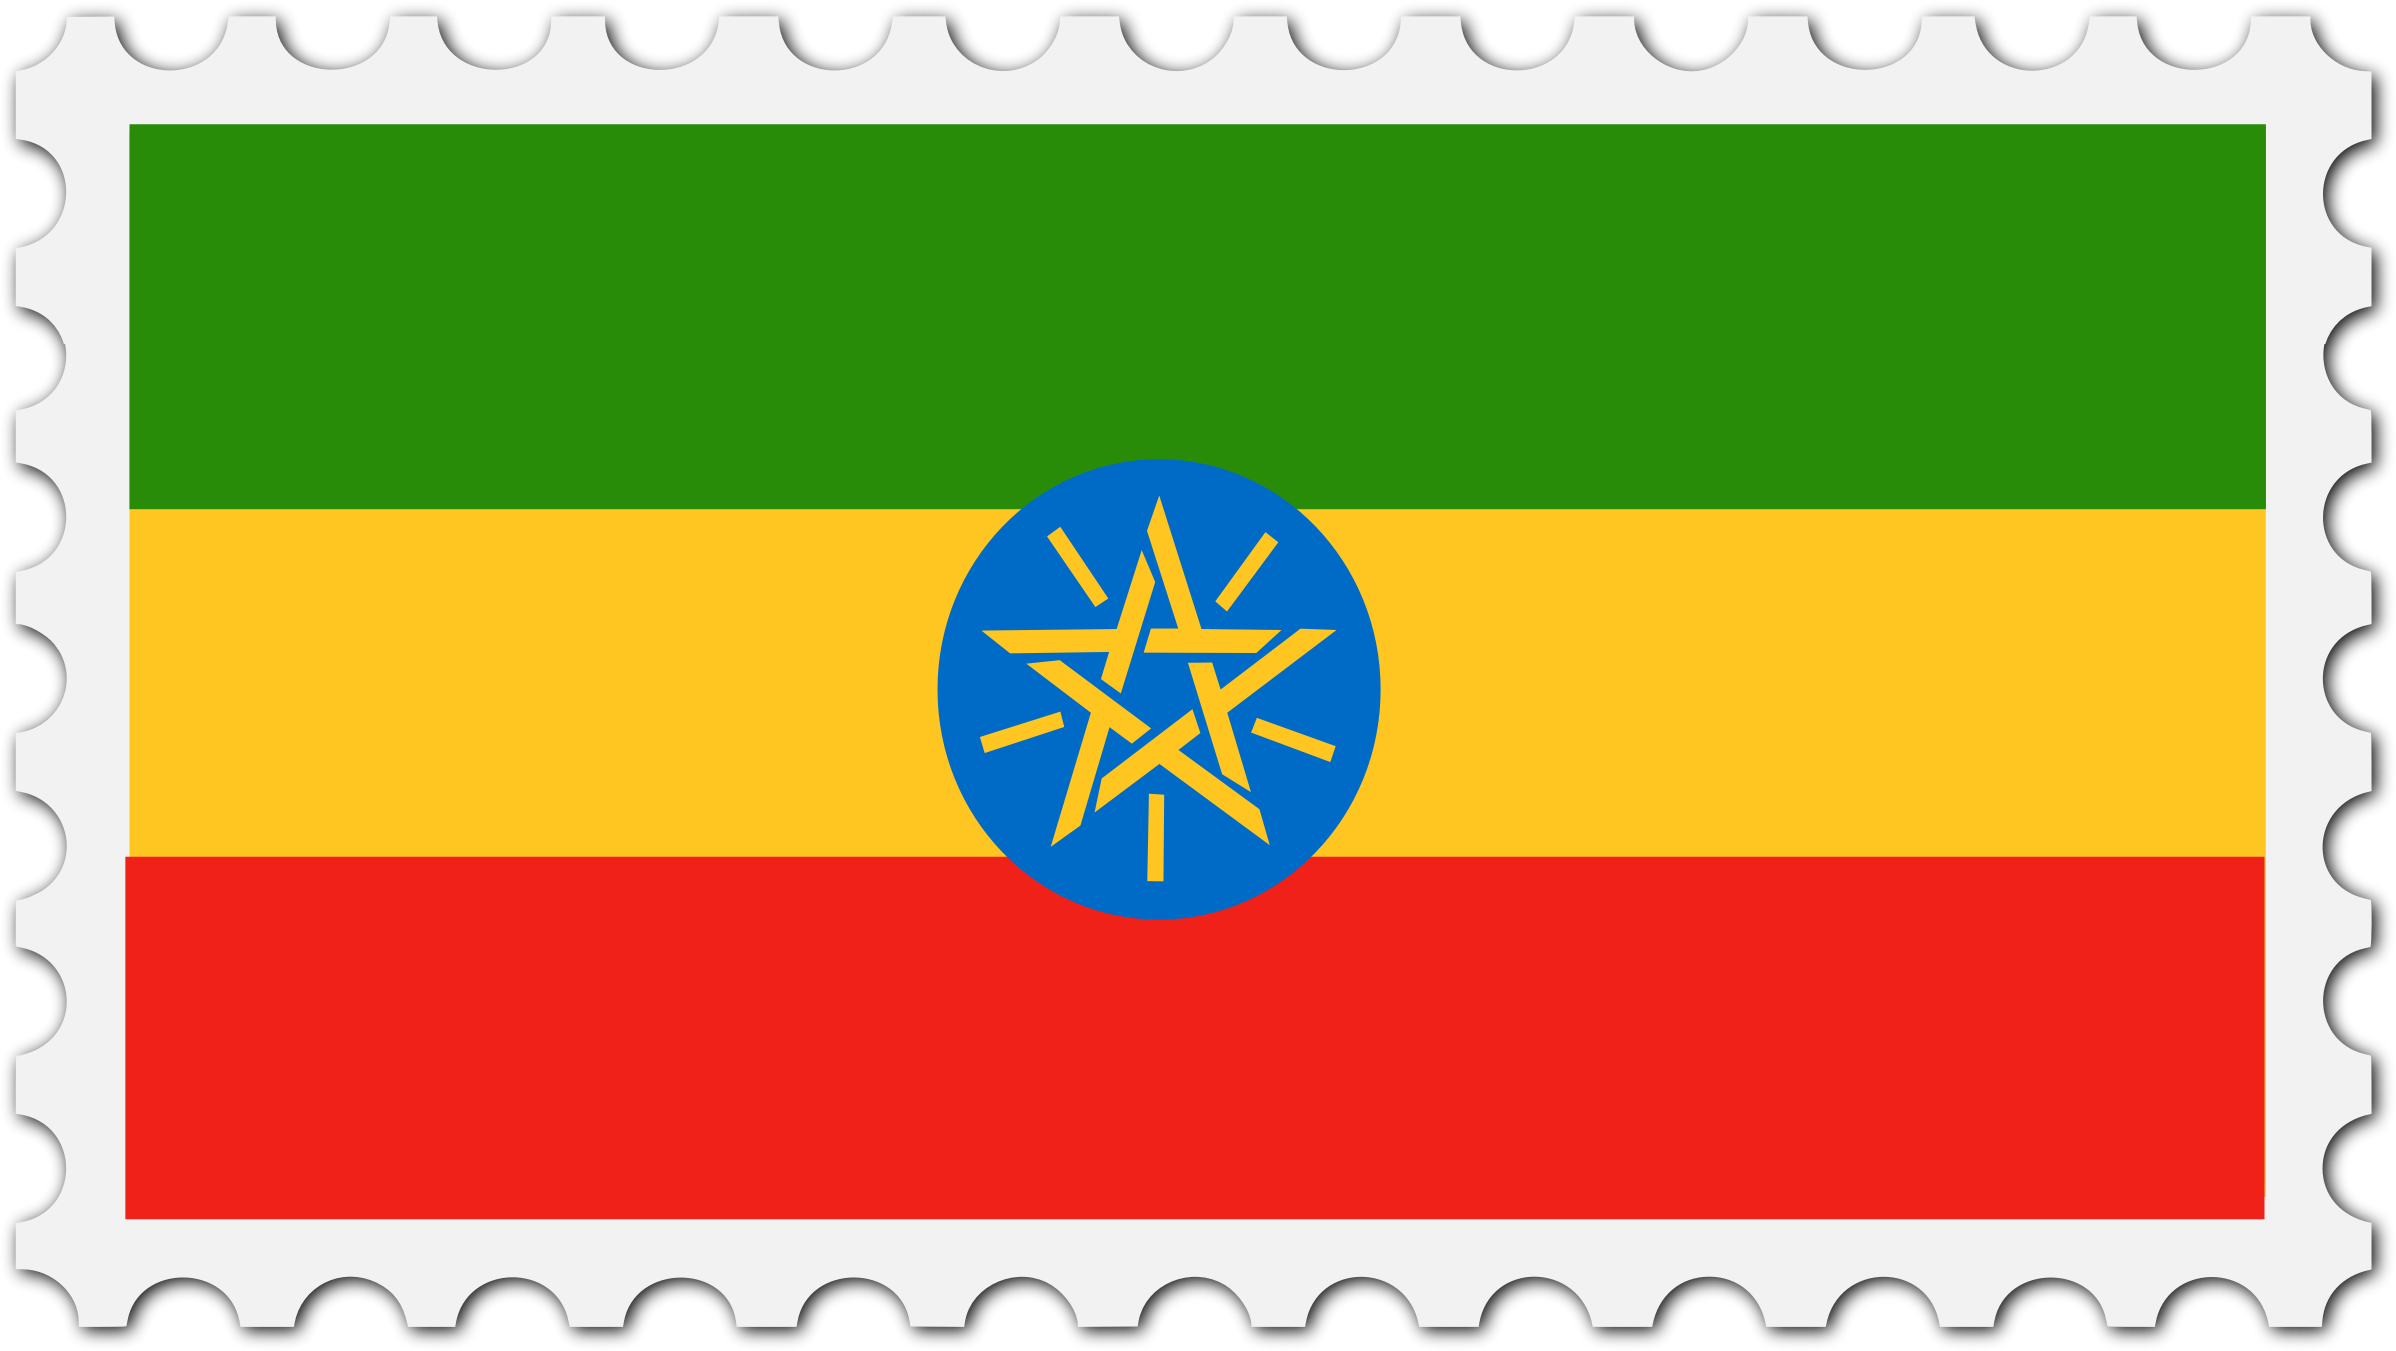 Ethiopia flag stamp by Firkin